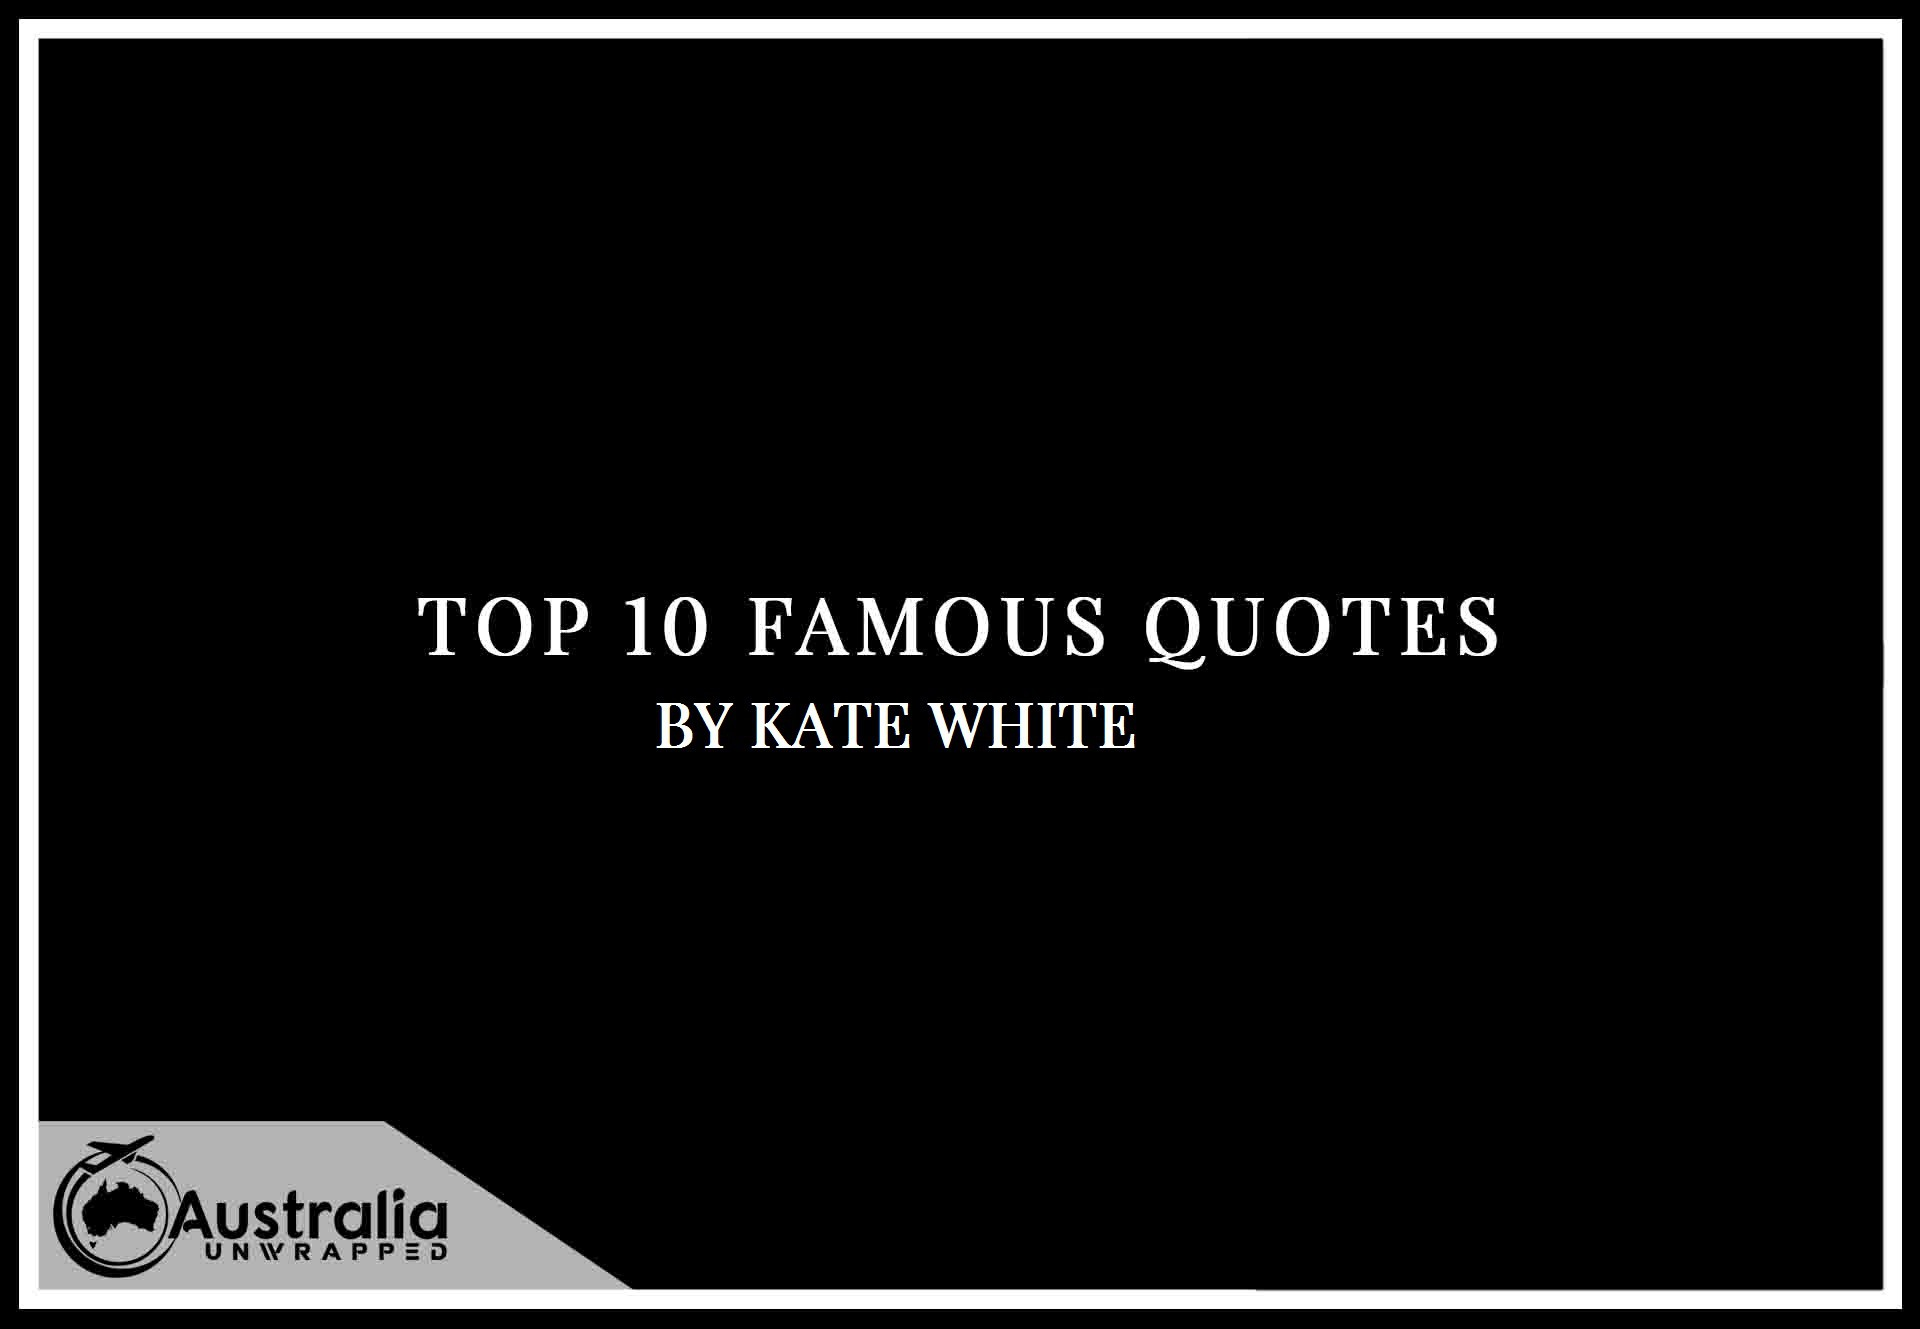 Kate White's Top 10 Popular and Famous Quotes